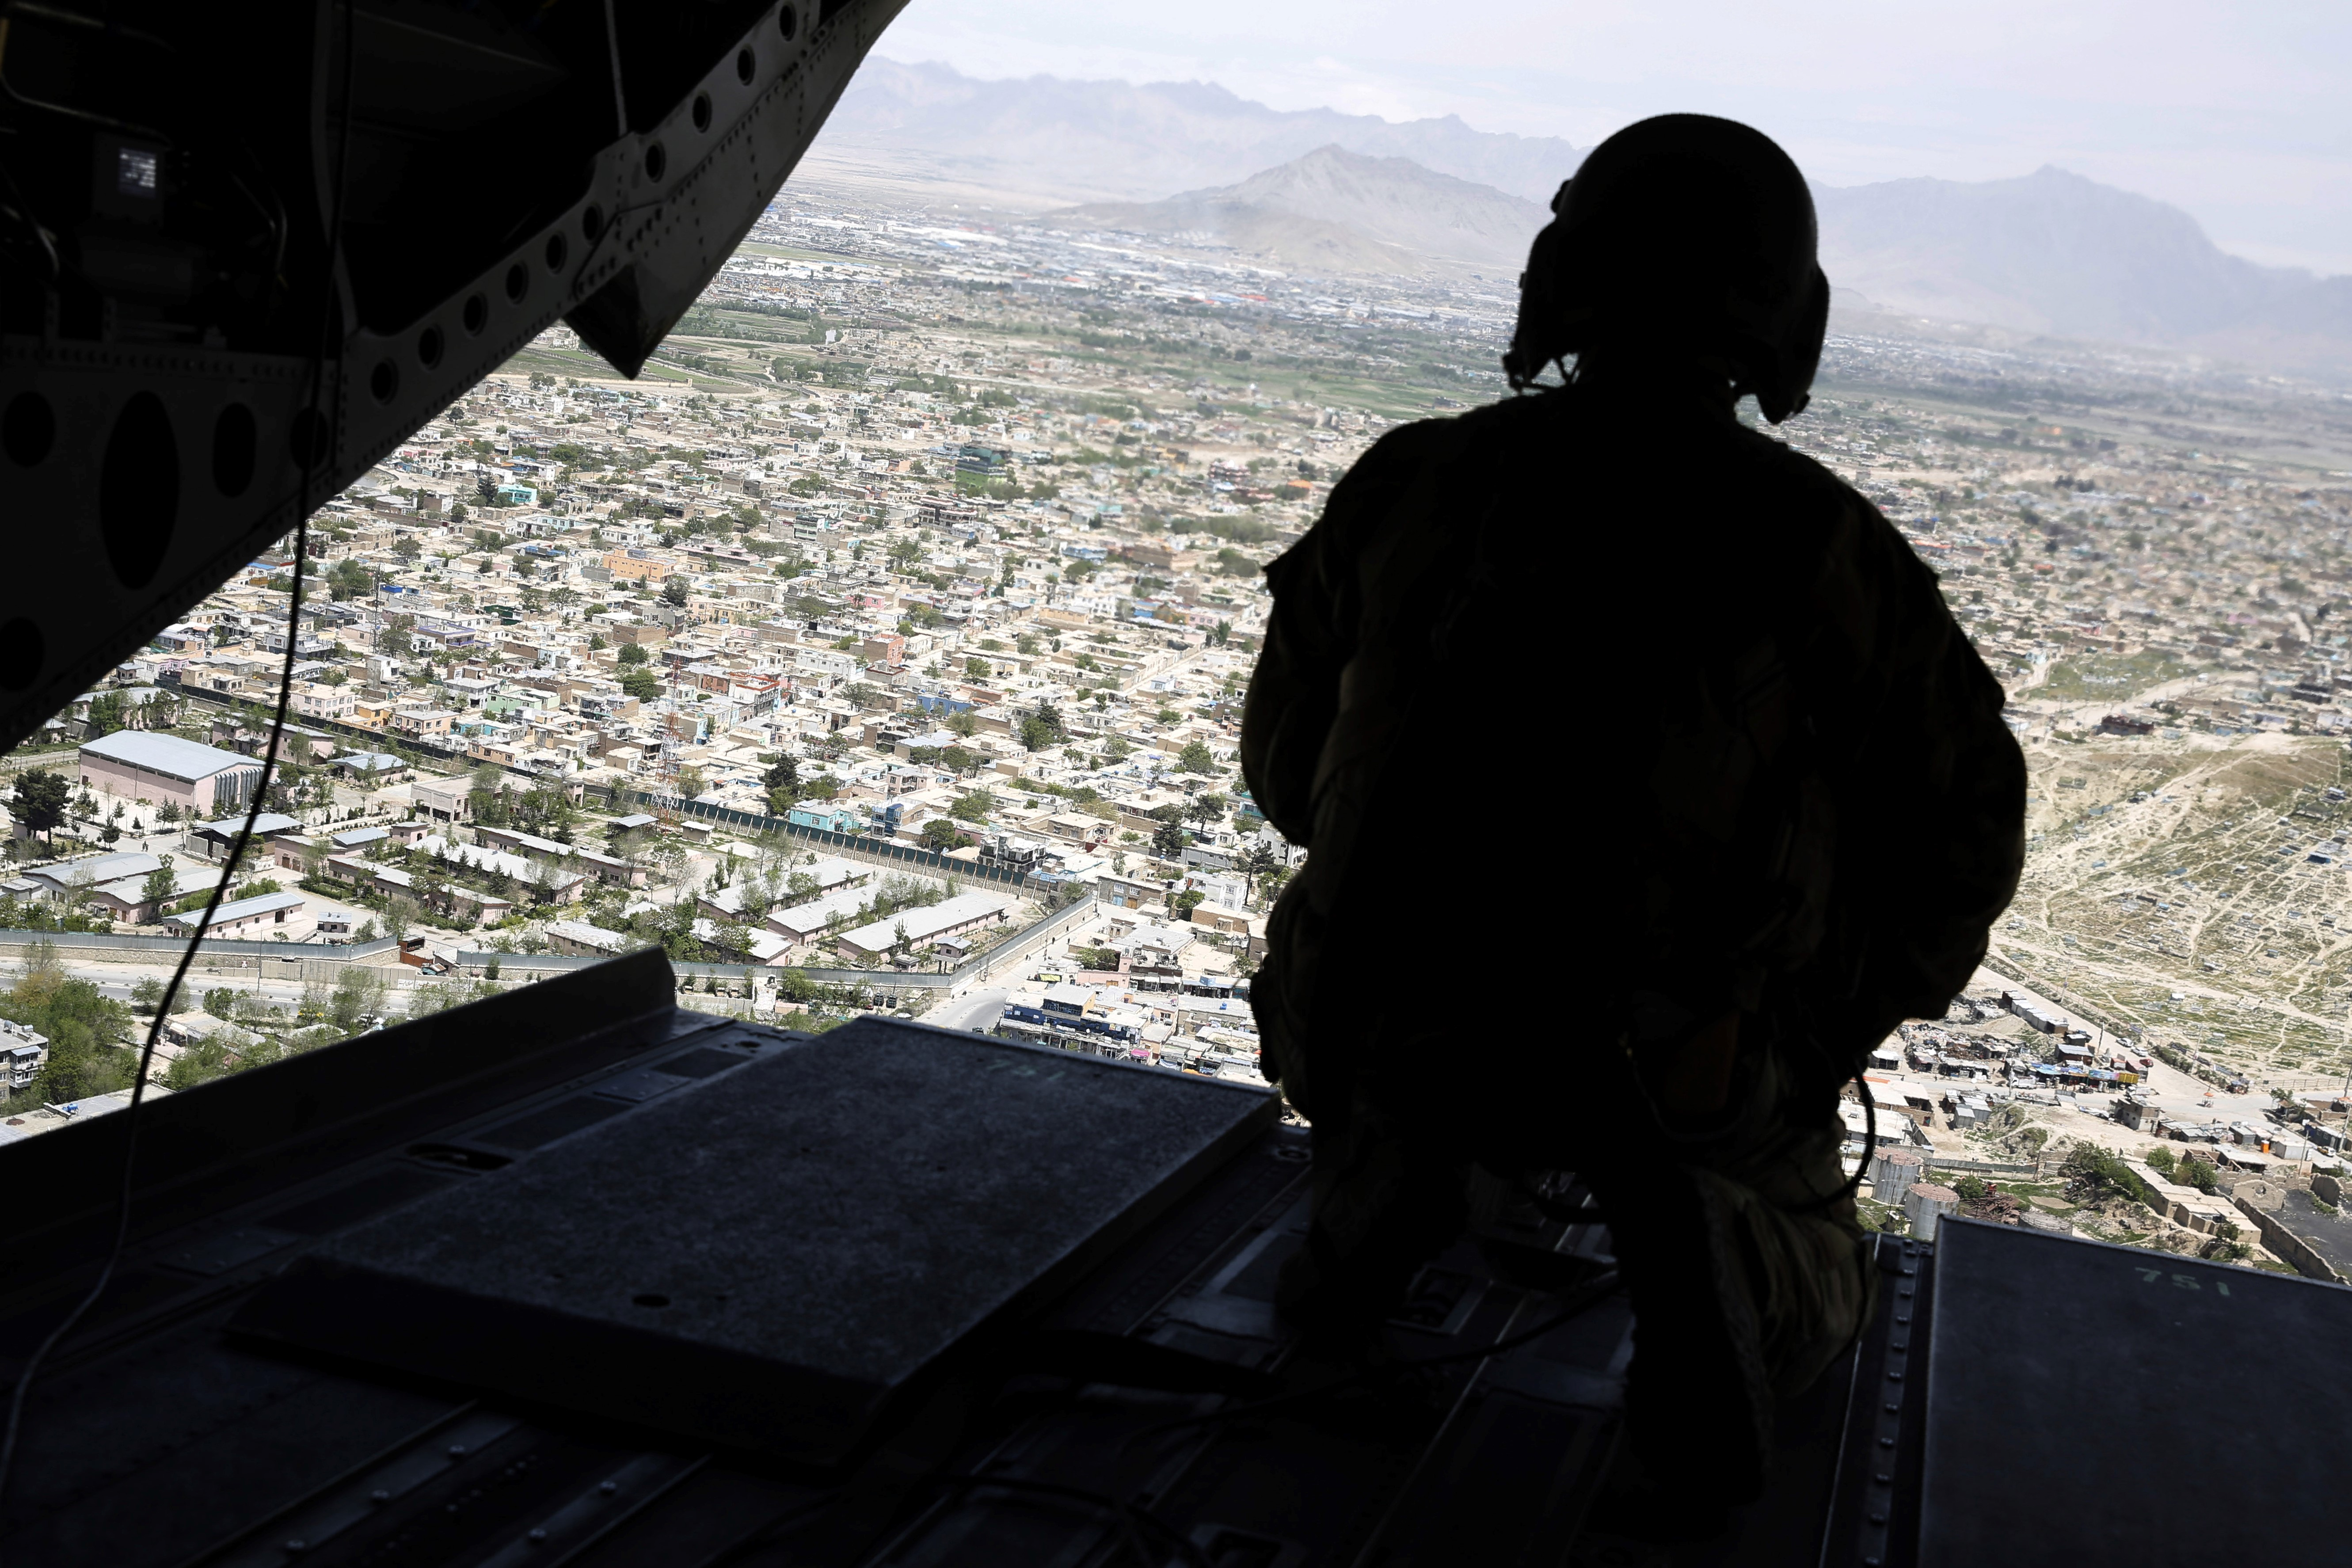 A US soldier mans a weapon at the tailgate aboard the helicopter carrying former Defense Secretary James Mattis in the Afghan capital Kabul on April 24, 2017.